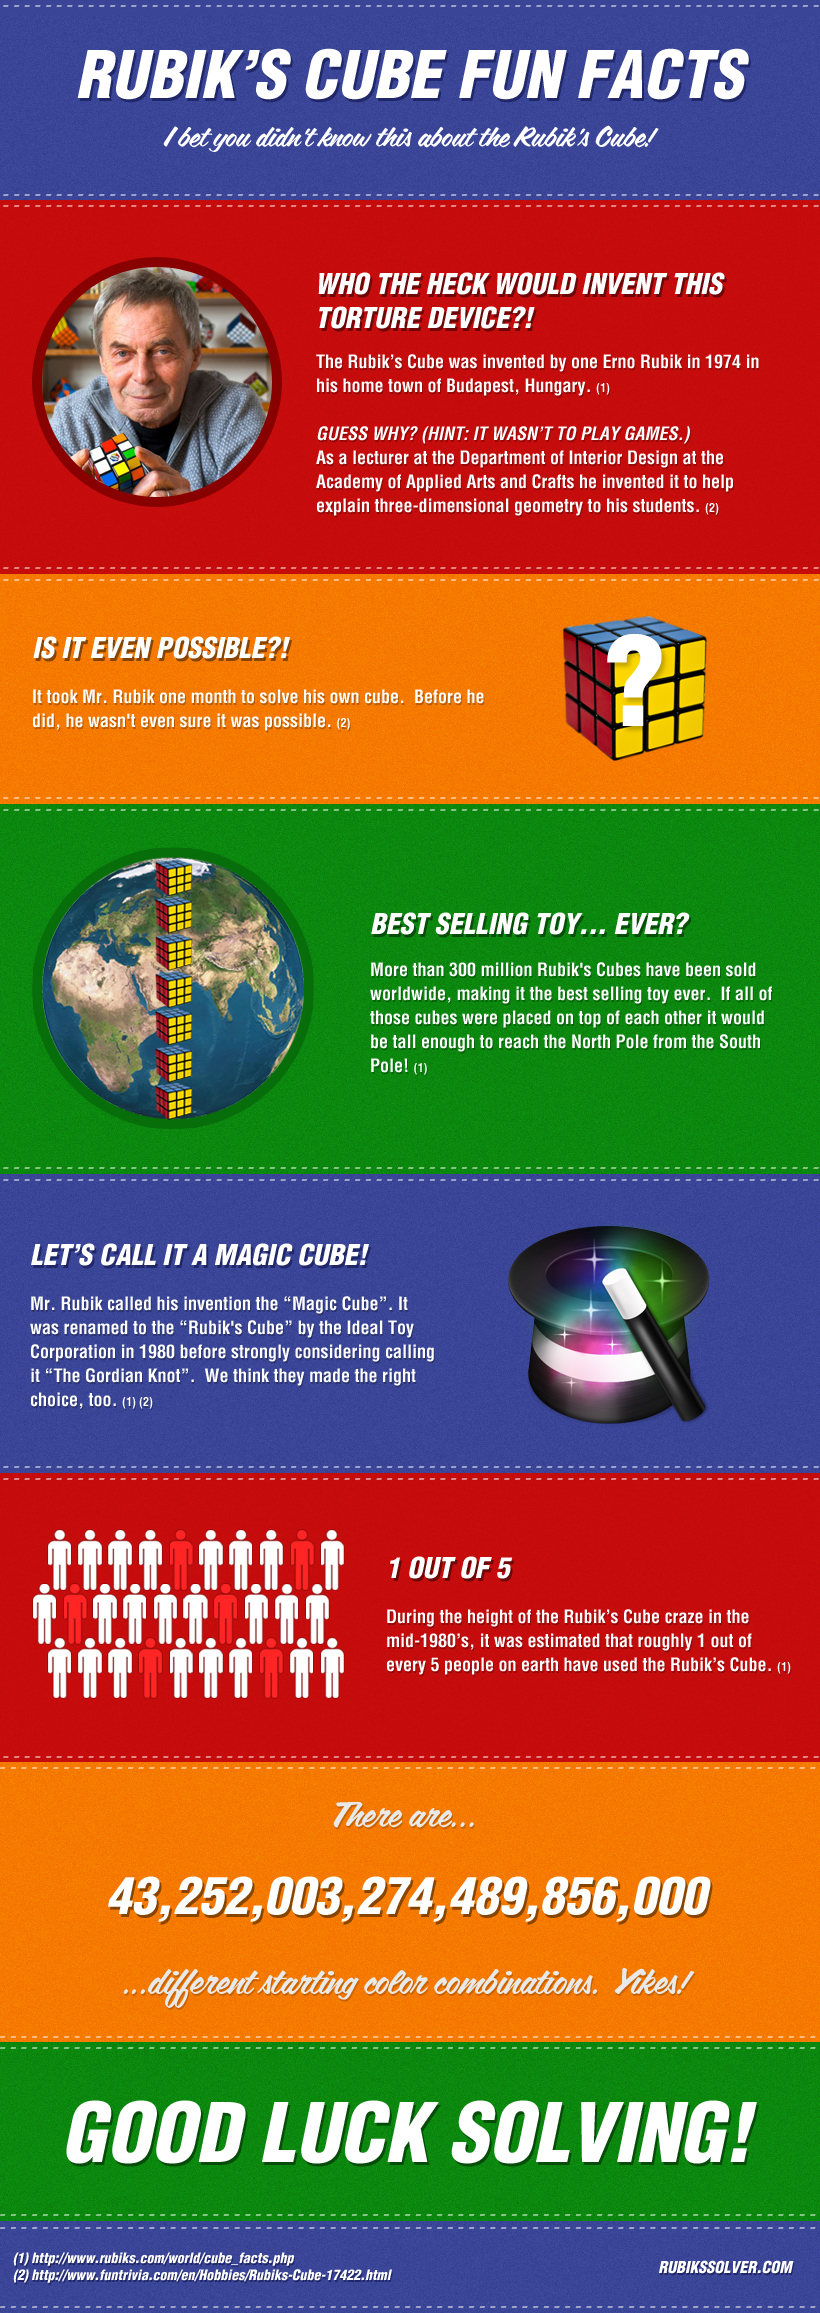 rubiks_cube_facts_infographic